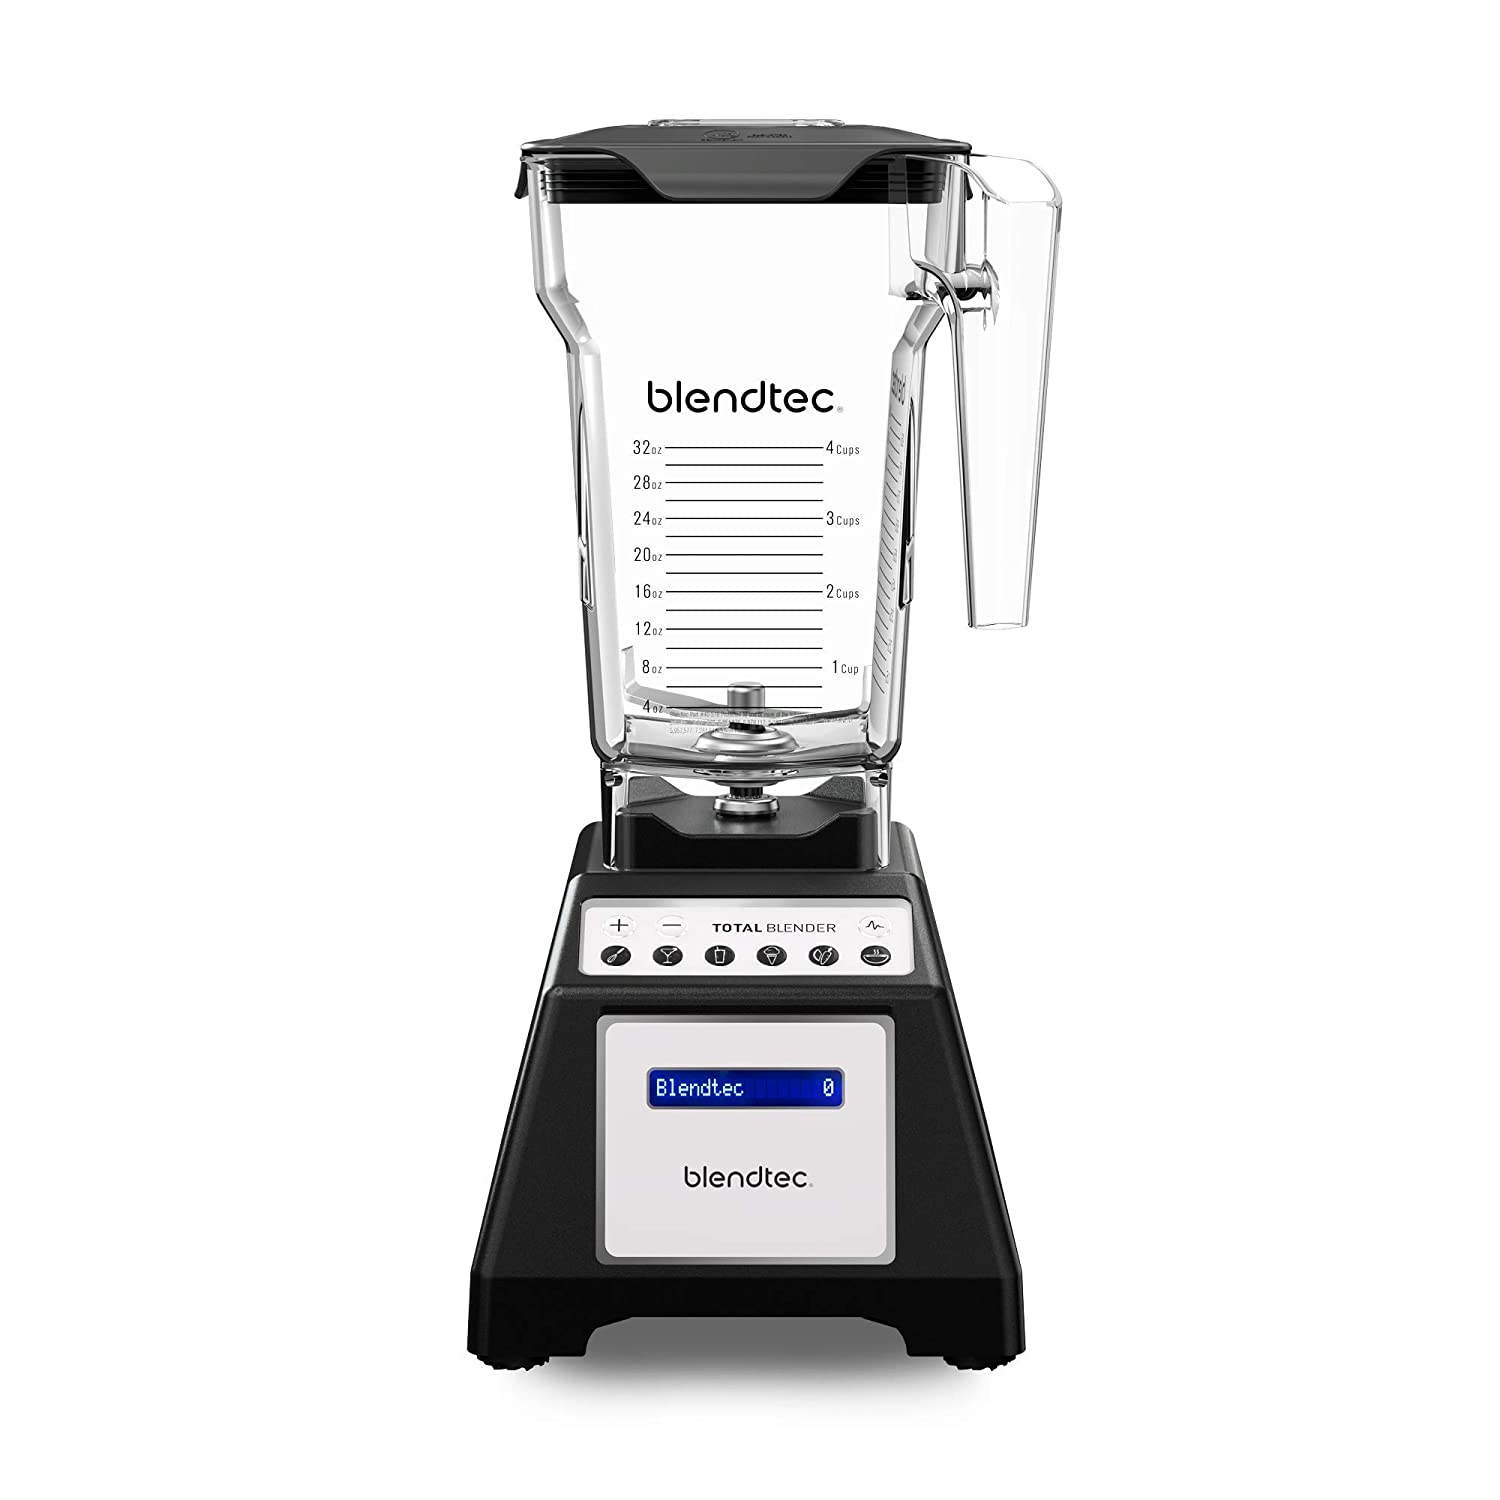 Top 10 Best Blender for Smoothies with Ice - Buyer's Guide 8